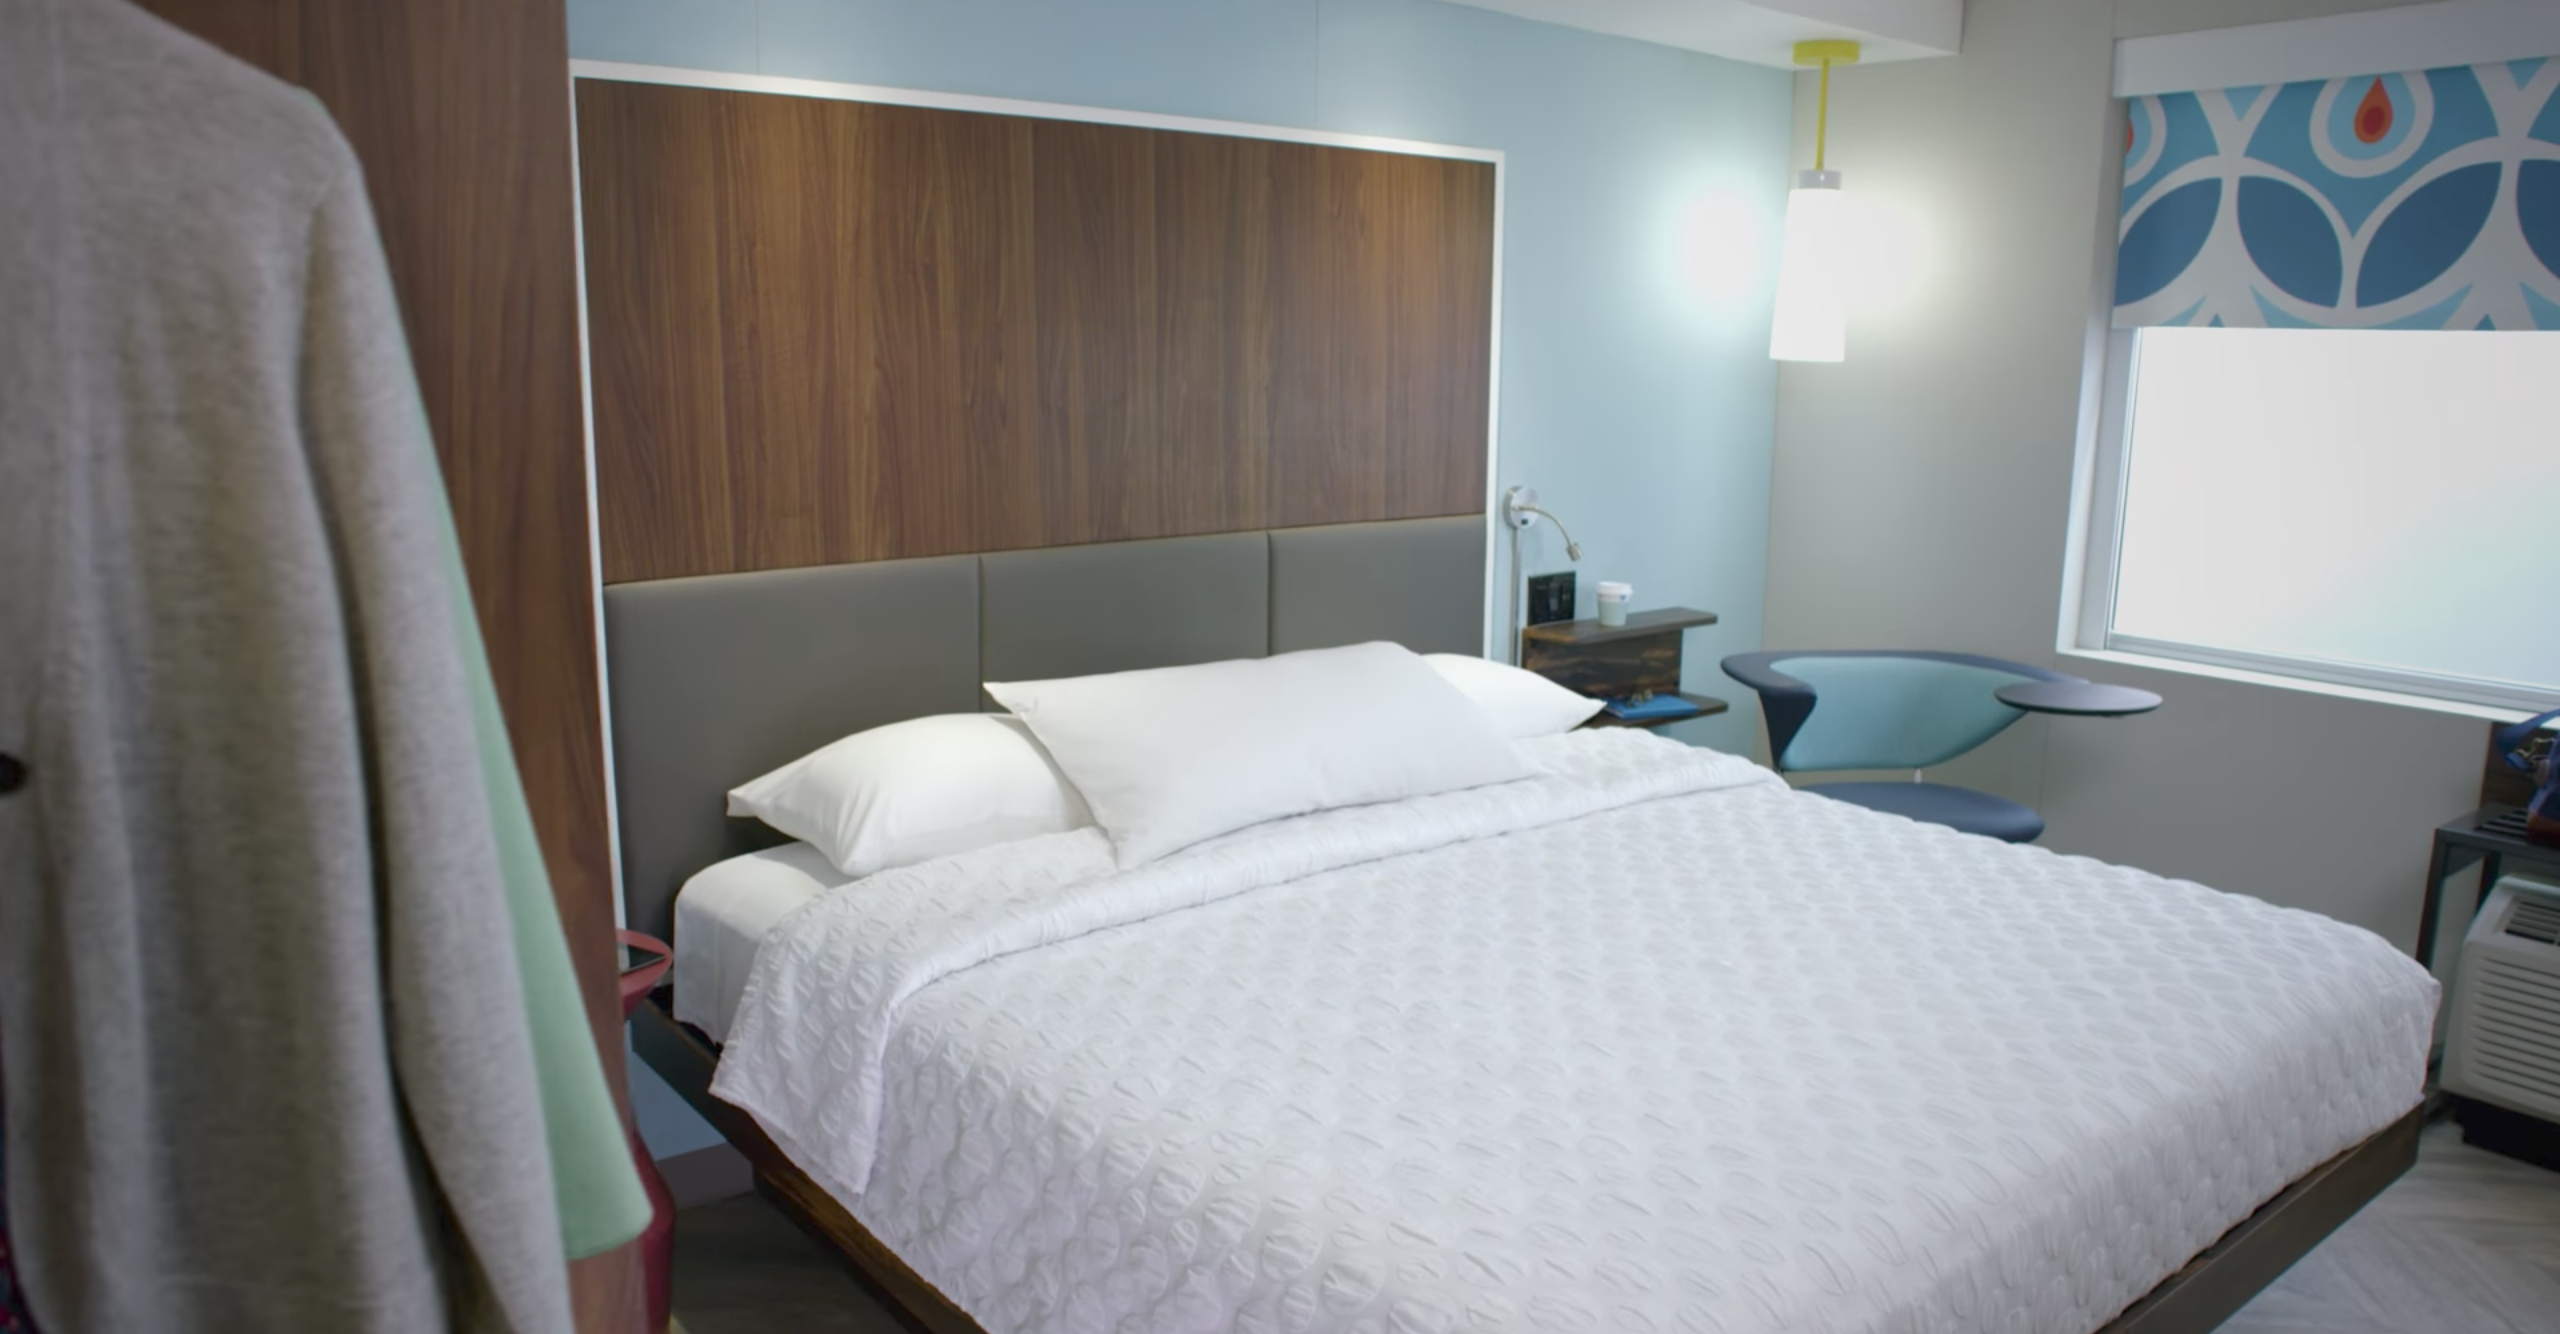 Hilton s Tru hotels are millennial friendly and low bud Curbed